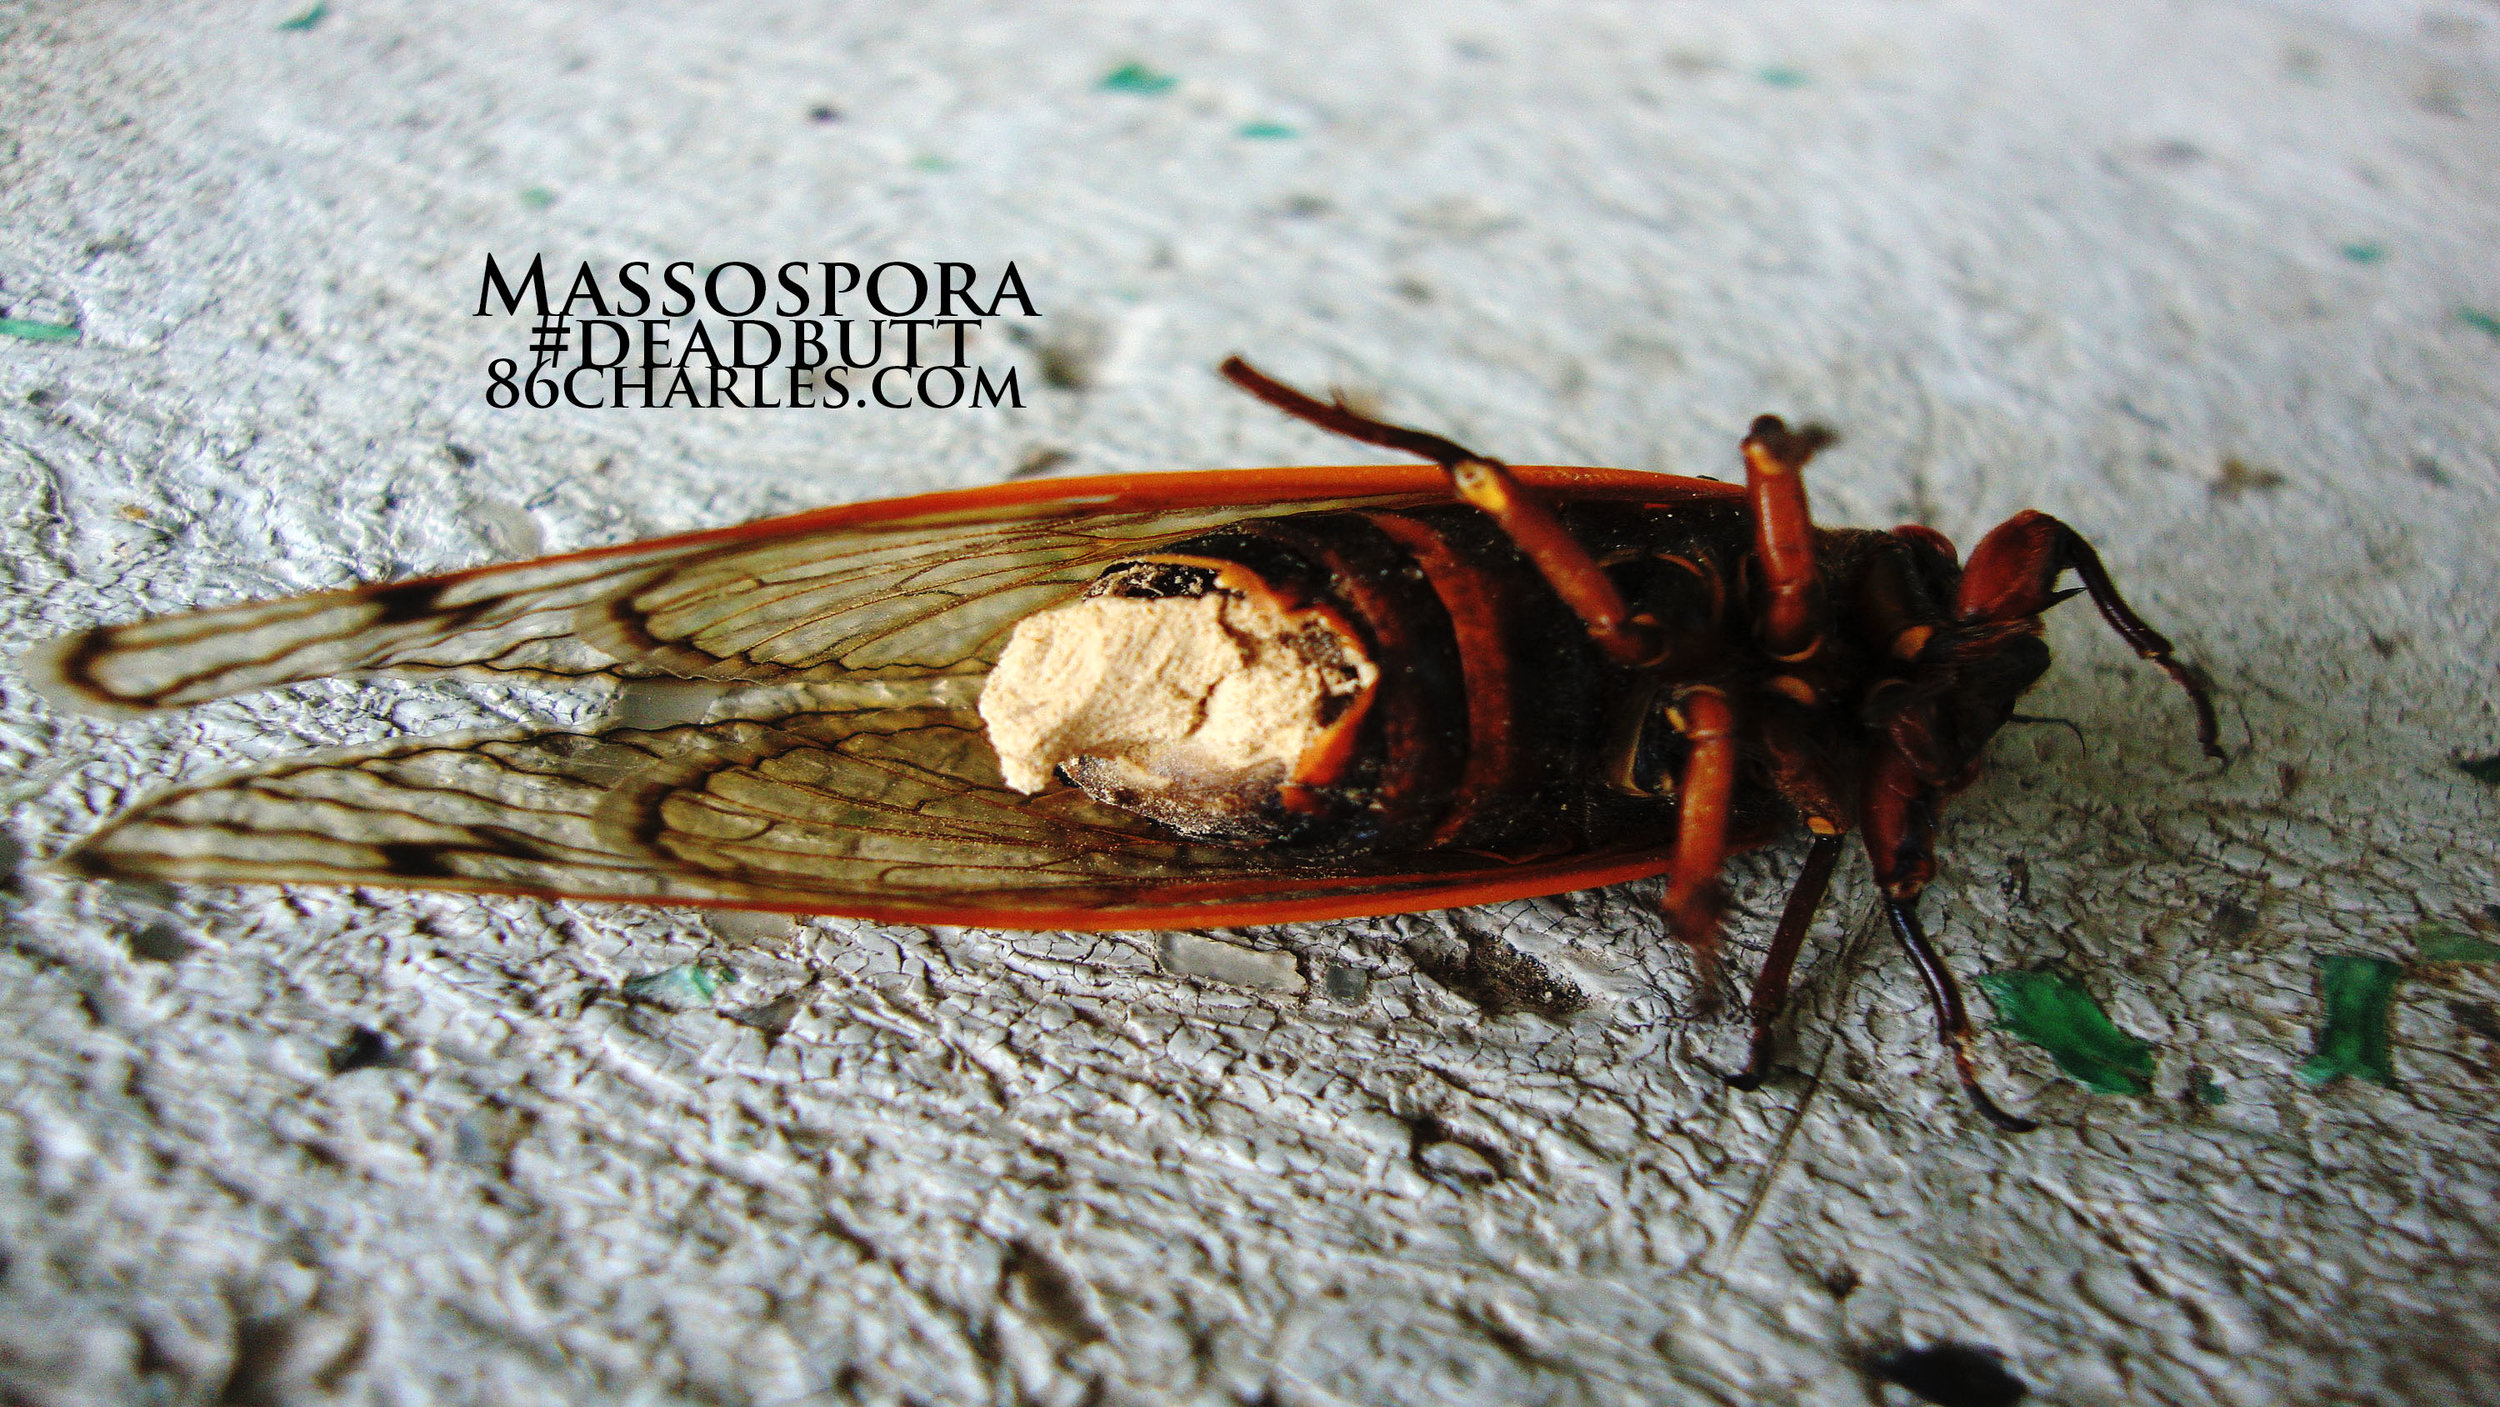 Massospora #deadbutt